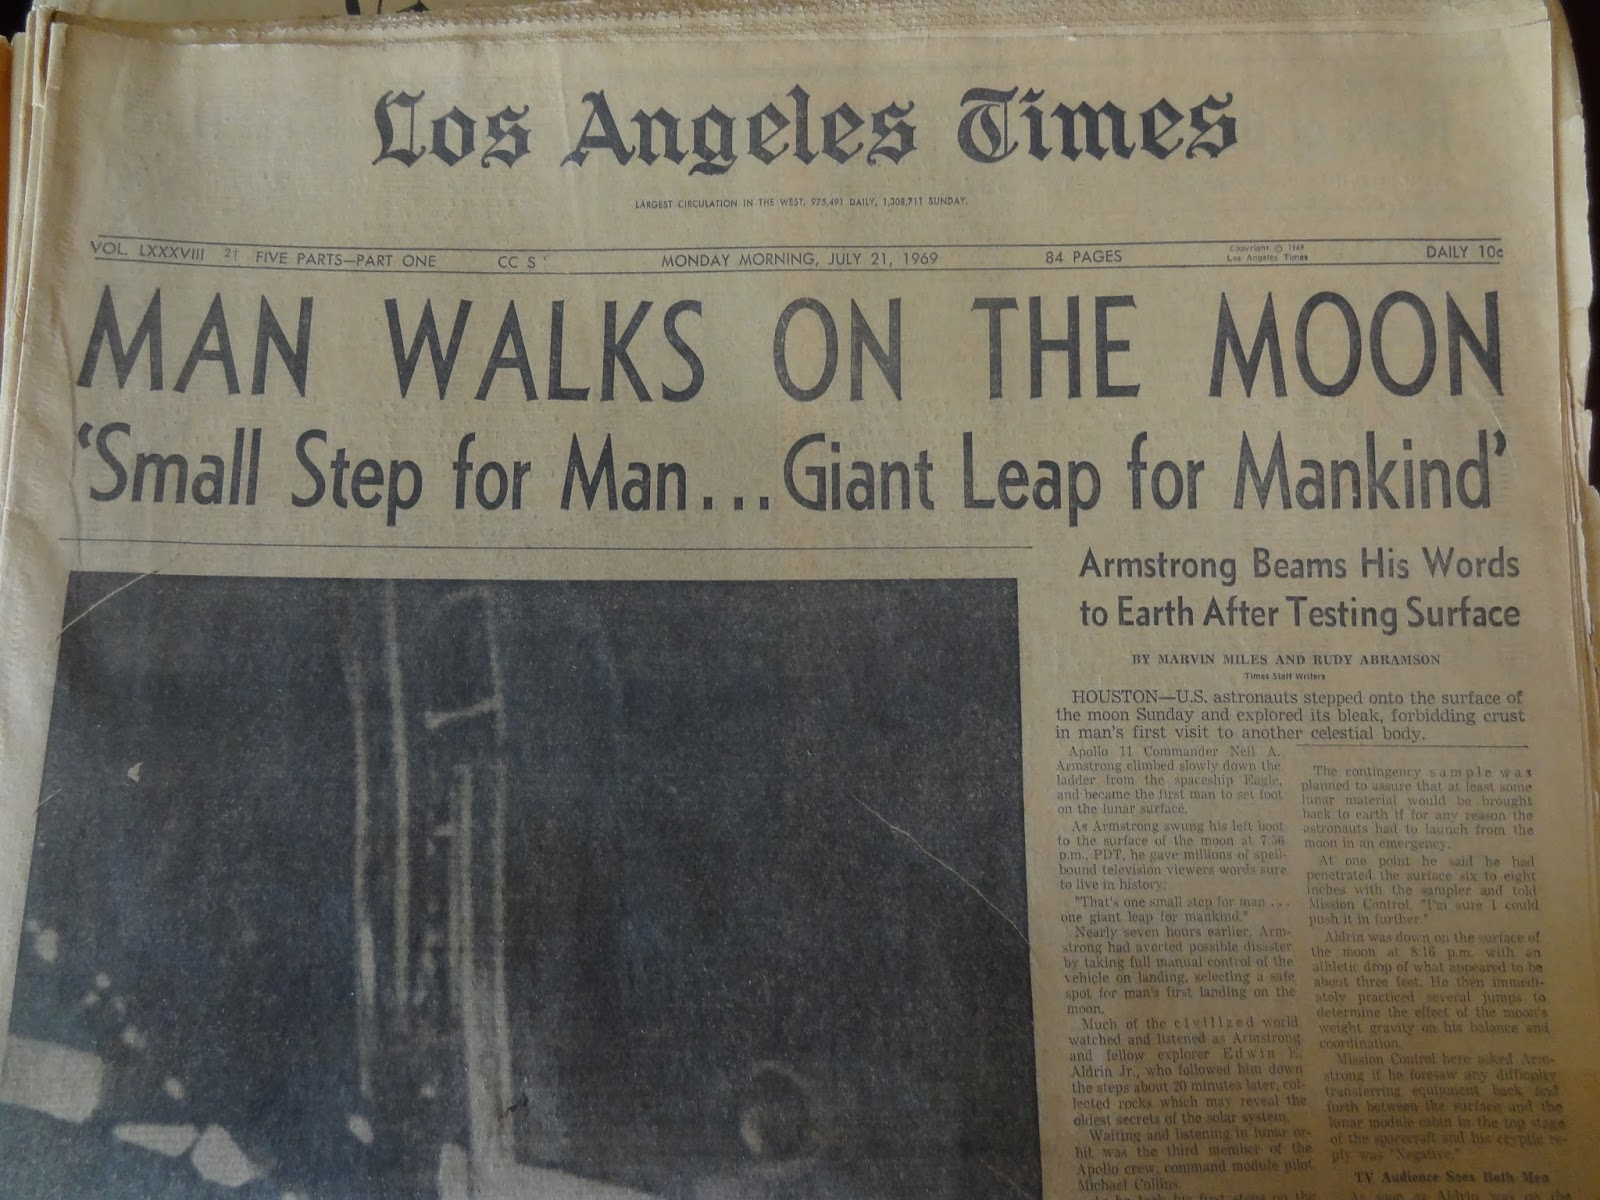 John herzig toland herzig famous endings remembering the man he set the first step on the moon on july 21 1969 and would soon speak those famous yet unprepared words thats one small step for man and one giant leap aiddatafo Choice Image